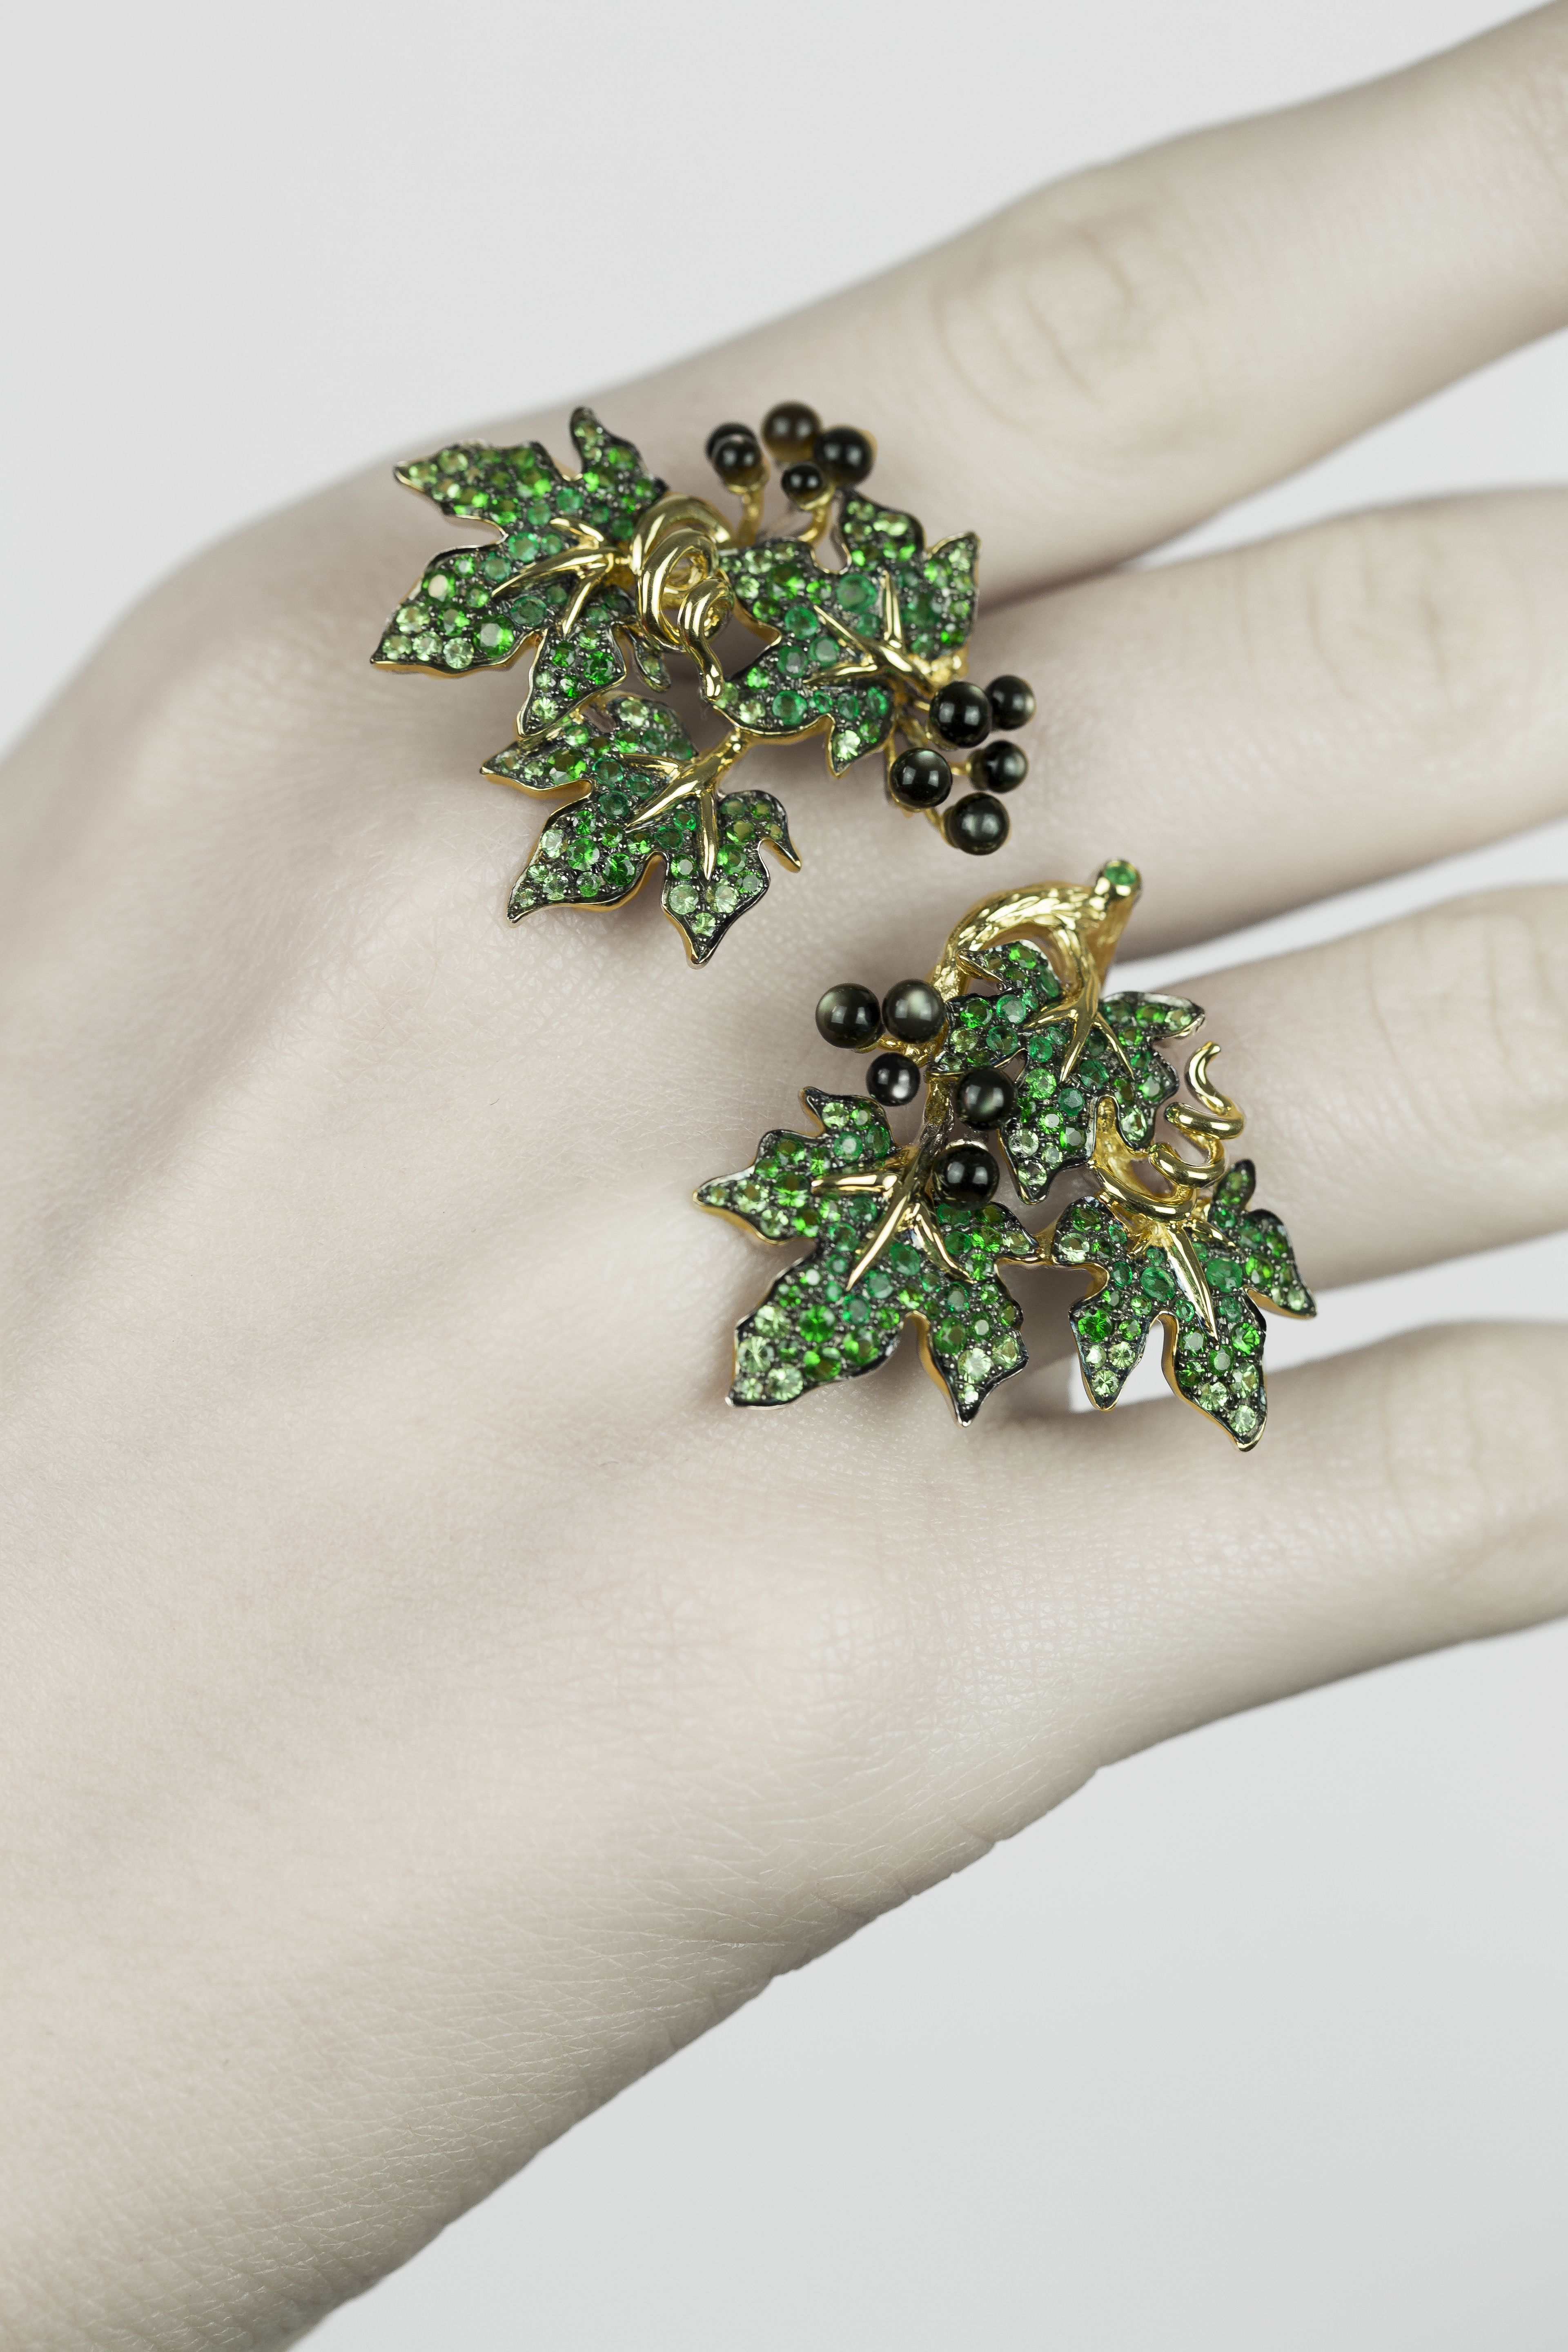 Morphée Millésime ('Vintage') between-the-finger ring with emeralds, tsavorites and grey pearled nacre set in 18K yellow gold - leaves and berries or grapes